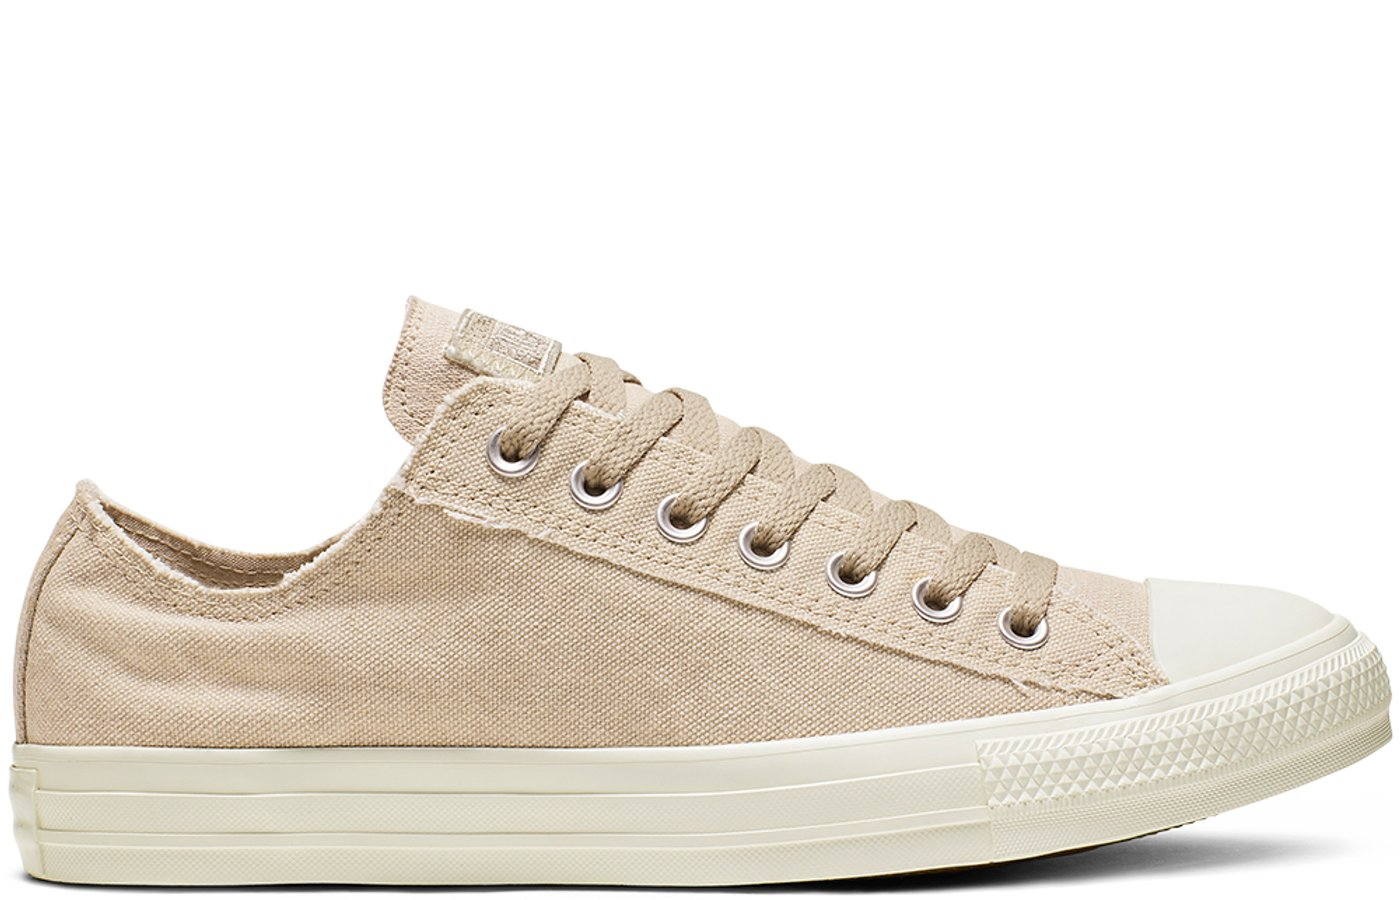 converse-all stars laag-heren-beige-164098c-beige-sneakers-heren